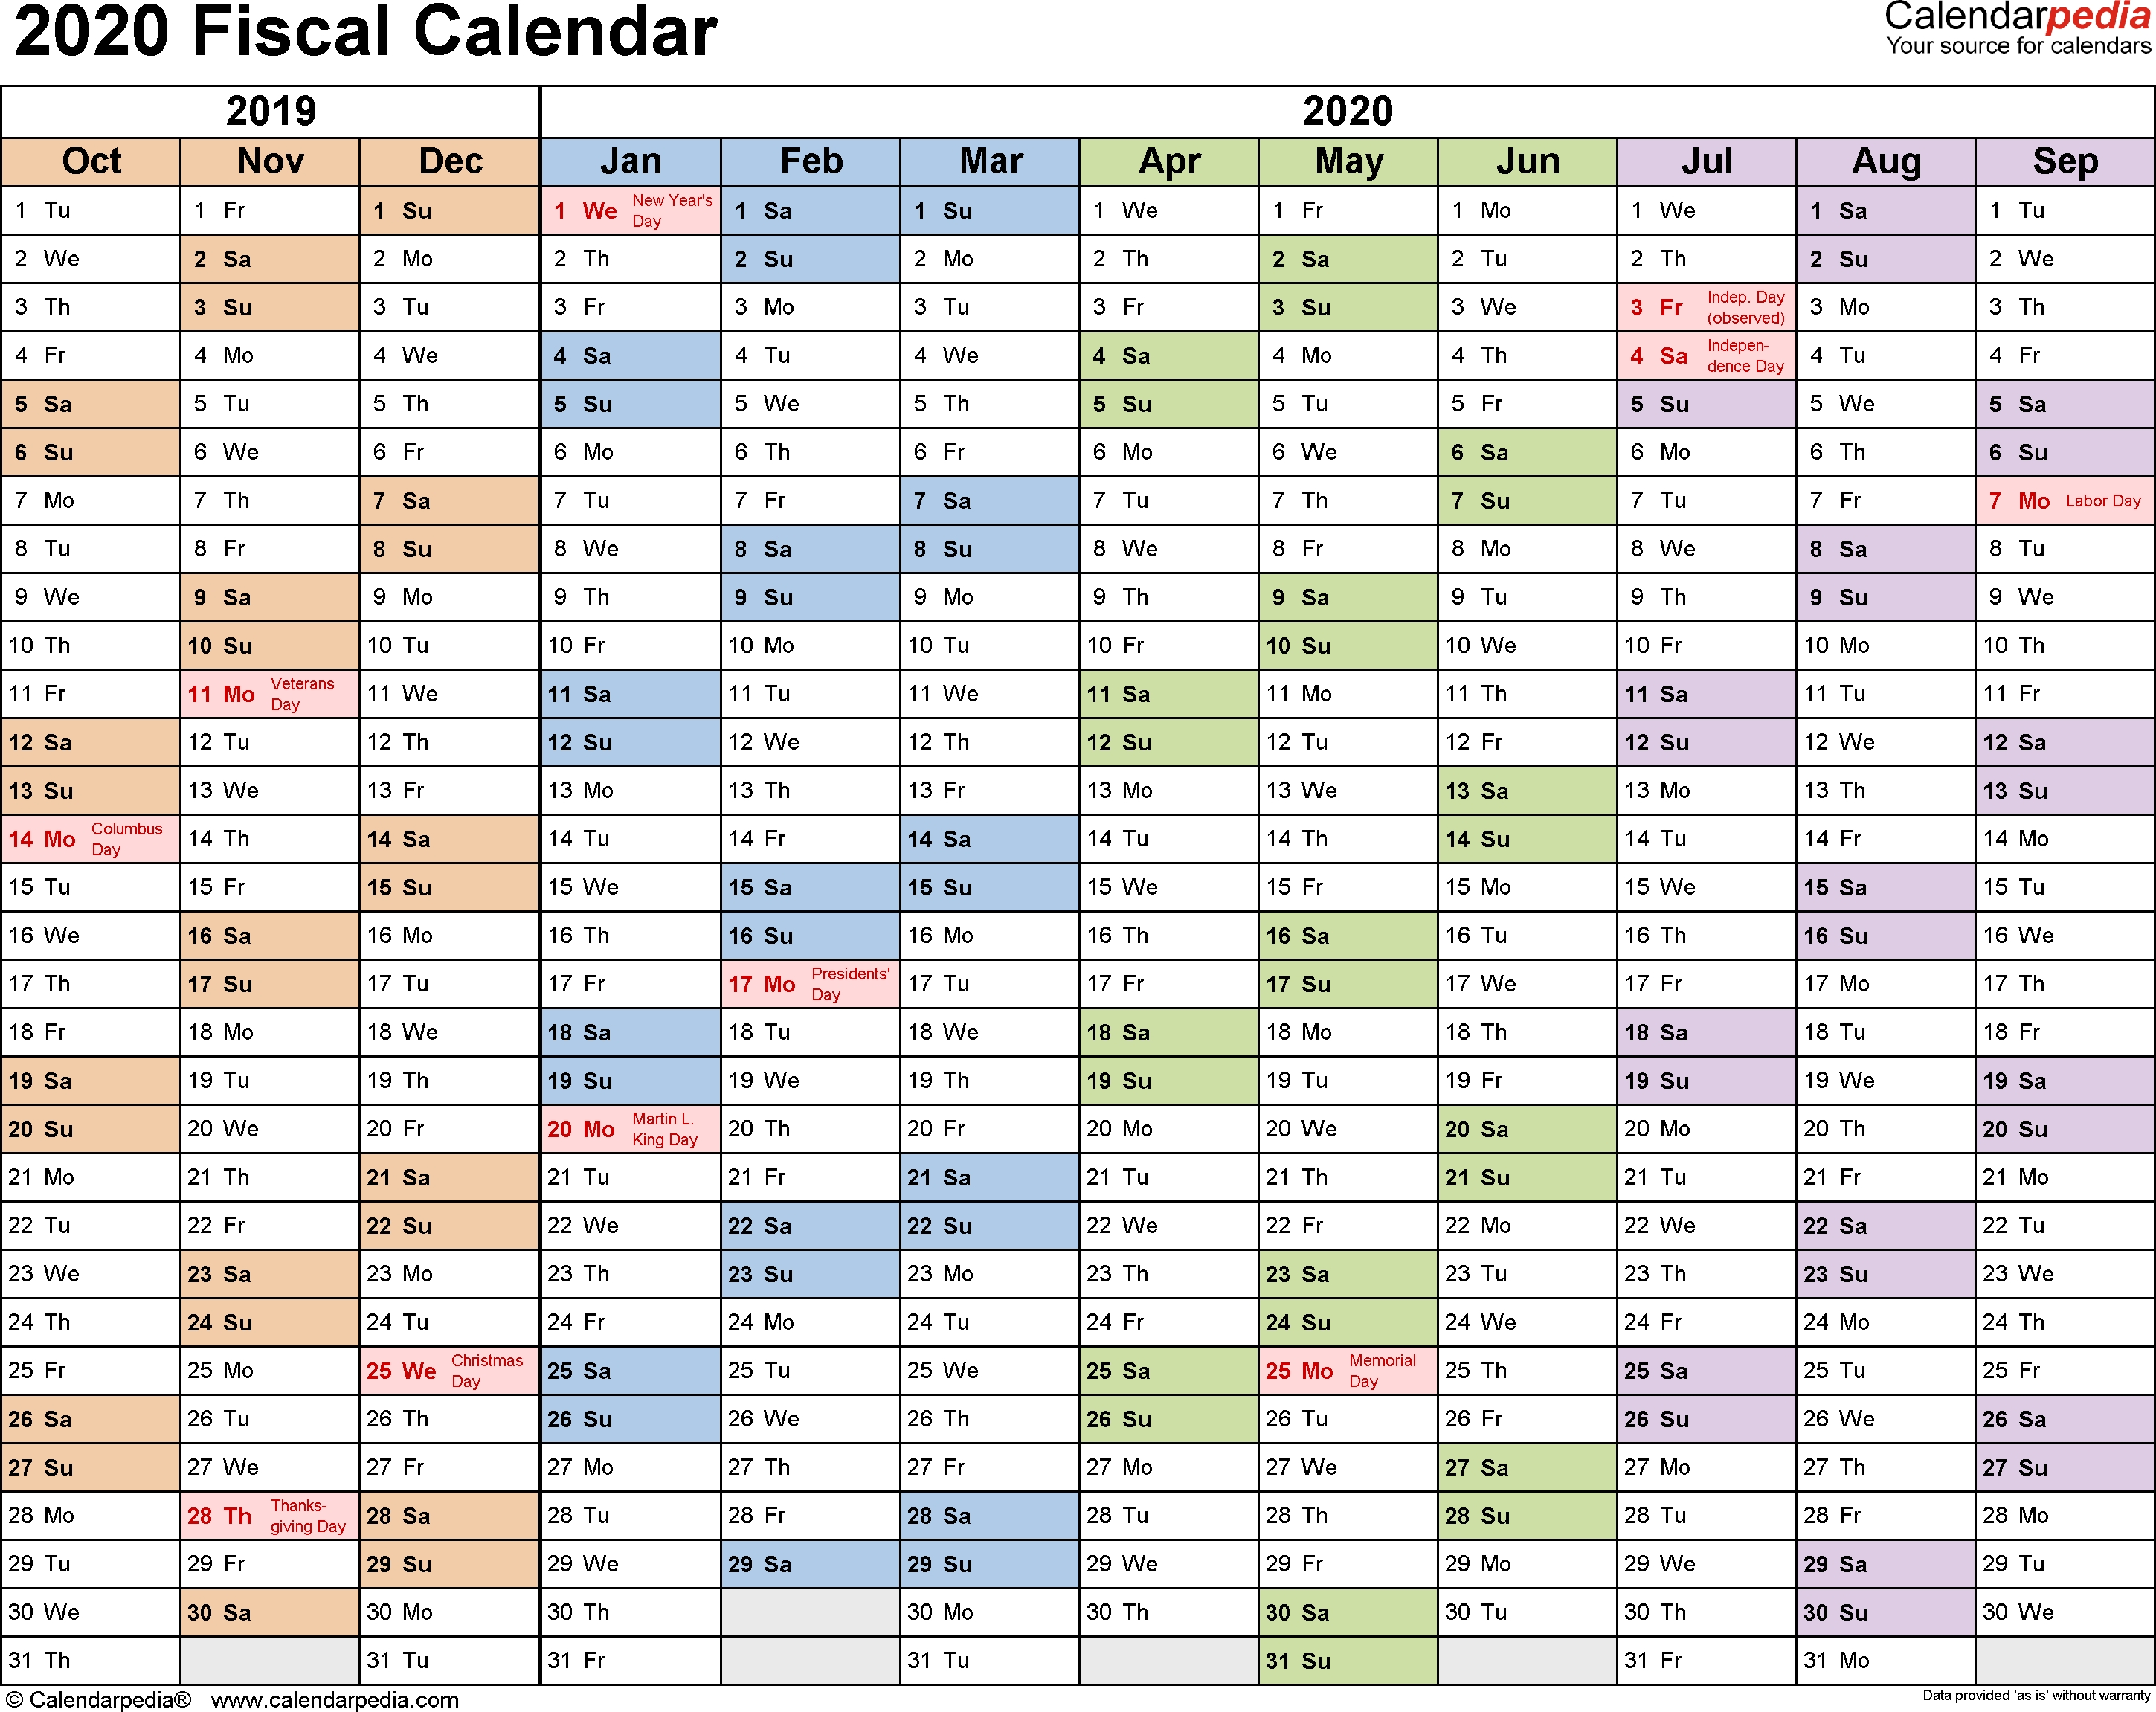 Fiscal Calendars 2020 - Free Printable Word Templates with 2020 4-4-5 Fiscal Accouting Calendar